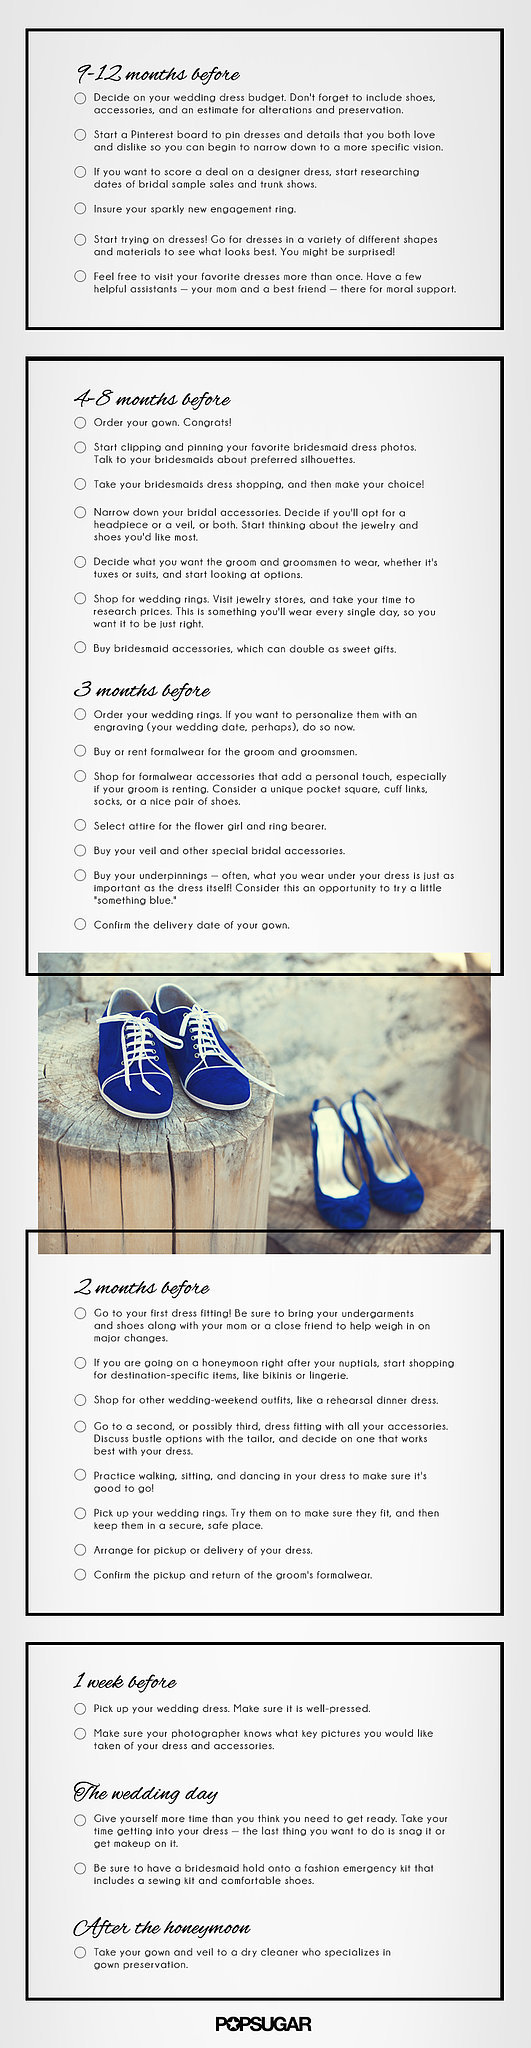 Attire Wedding Checklist Printable